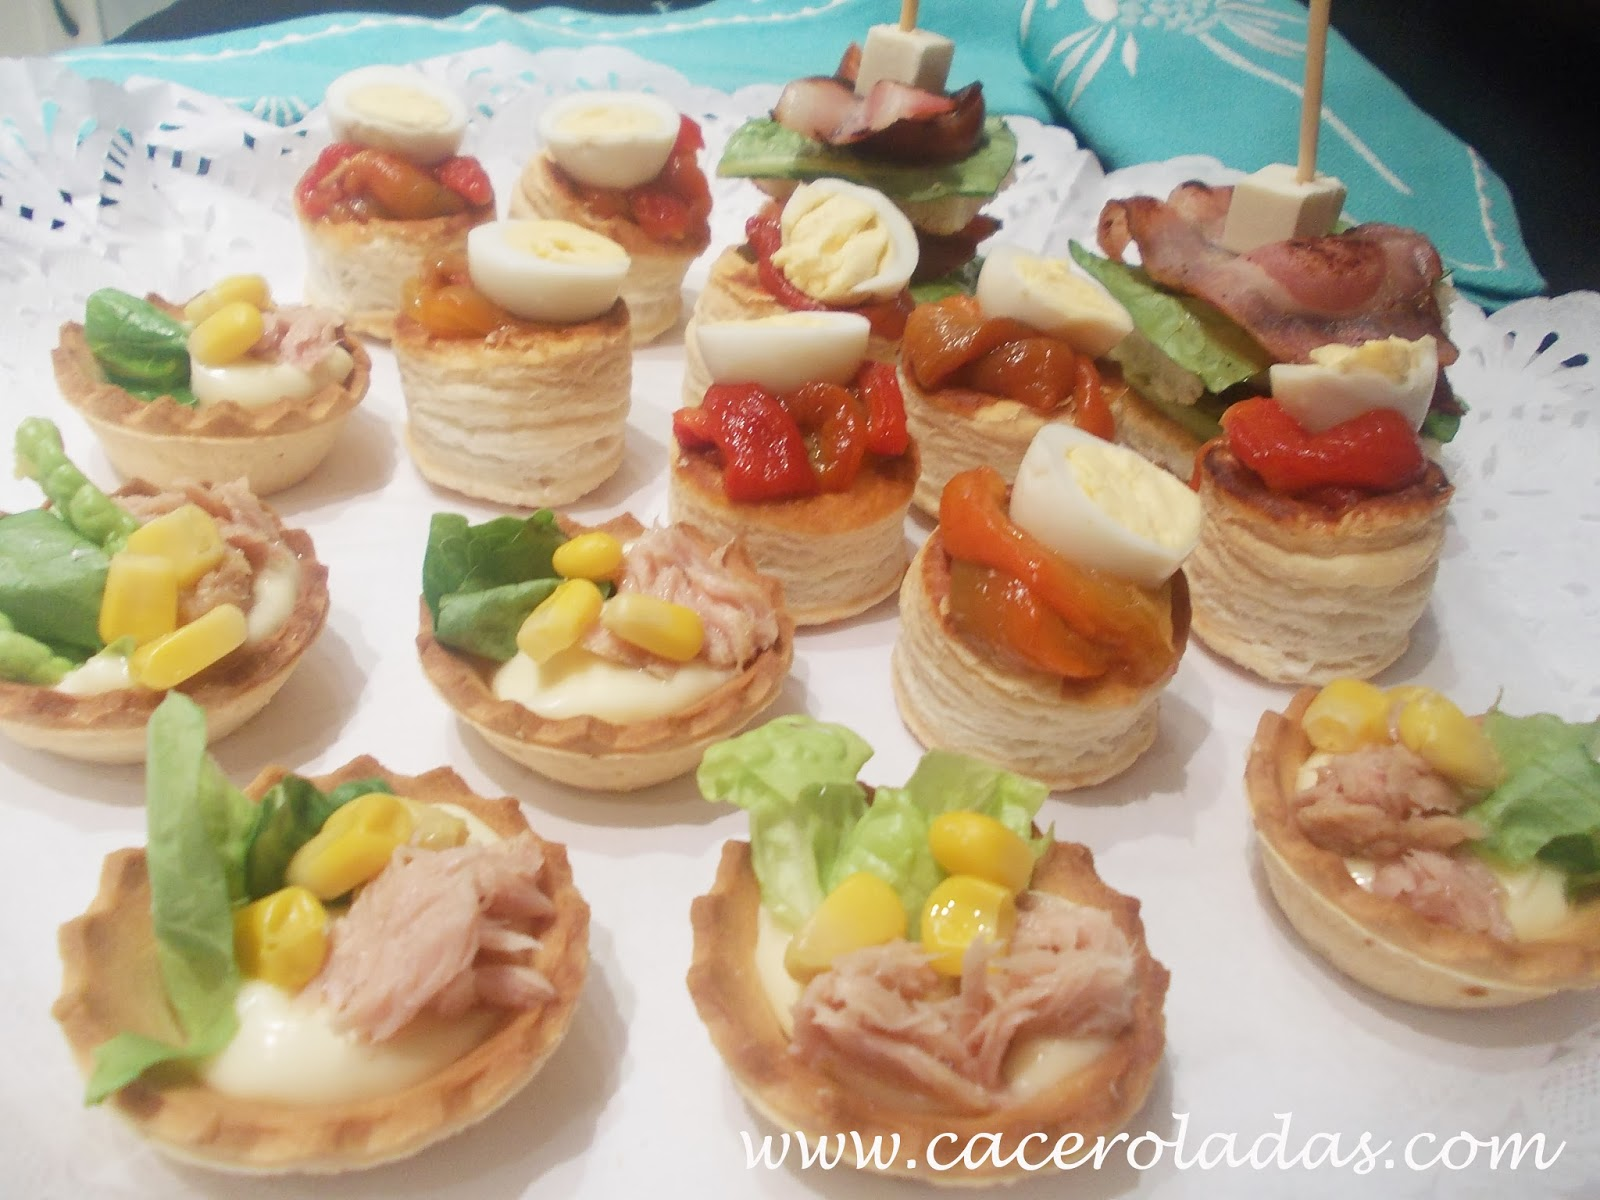 Canapes variados caceroladas for Canapes faciles y economicos